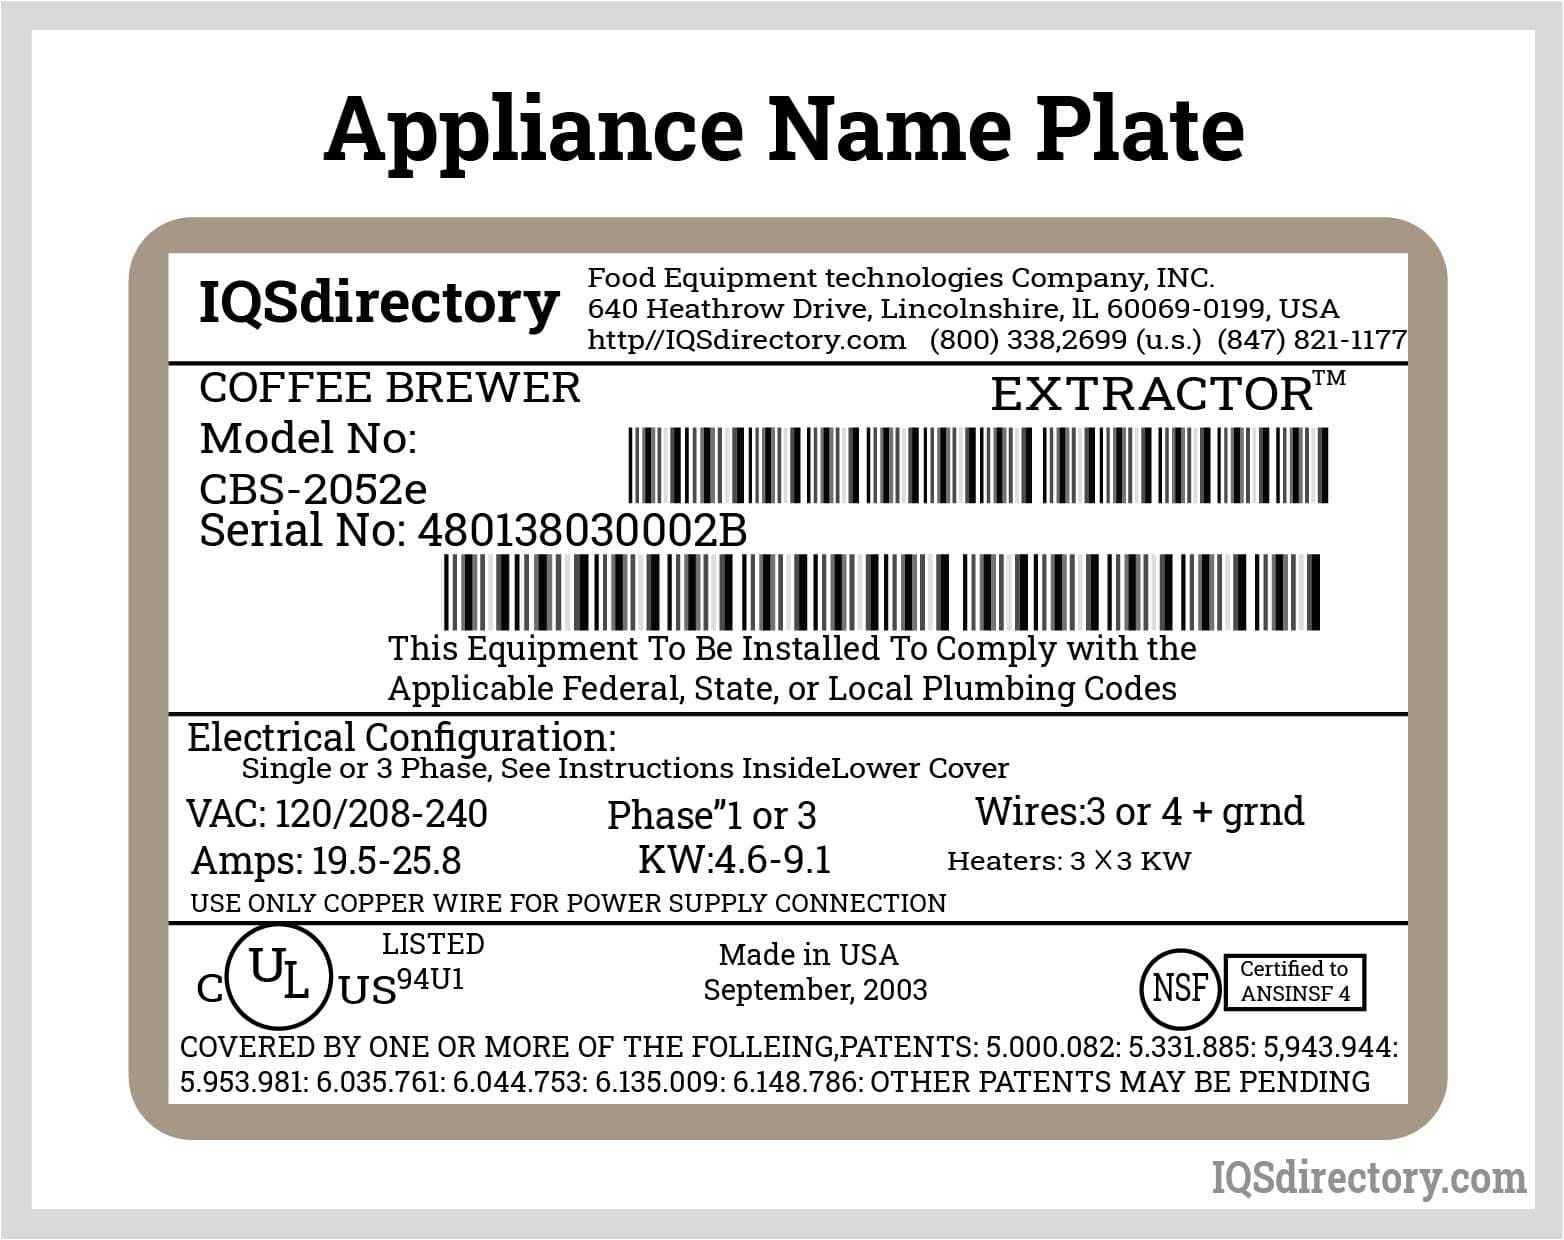 Appliance Name Plate